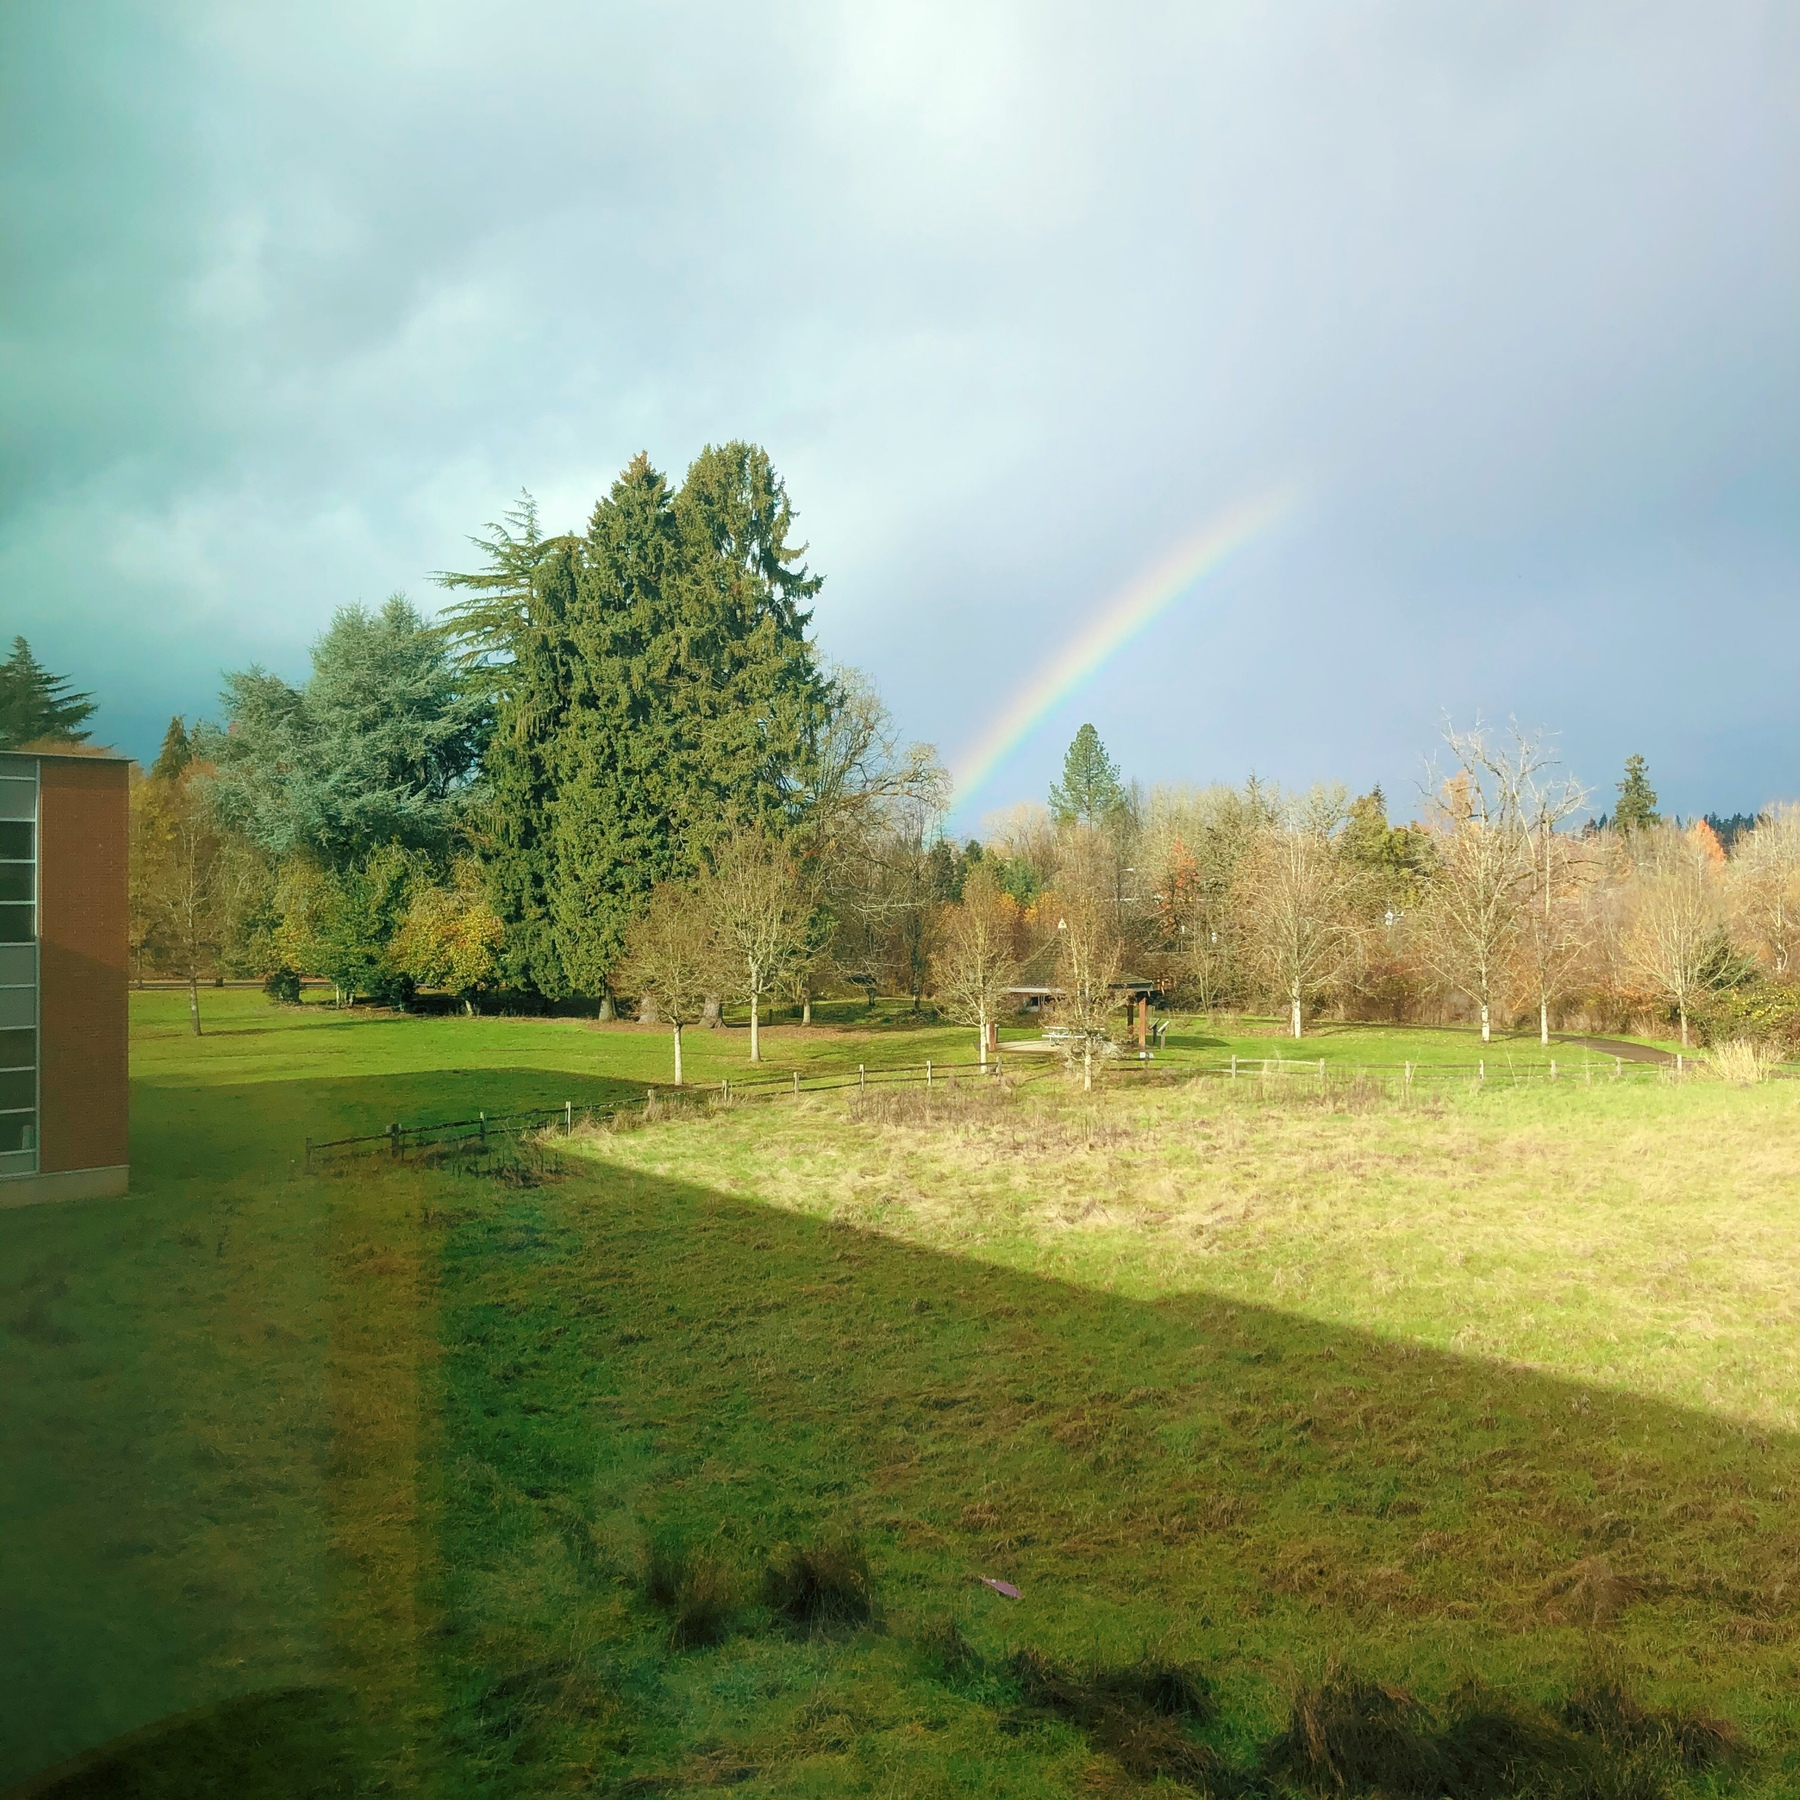 A photo of a grassy field, trees, sky, and a small rainbow.